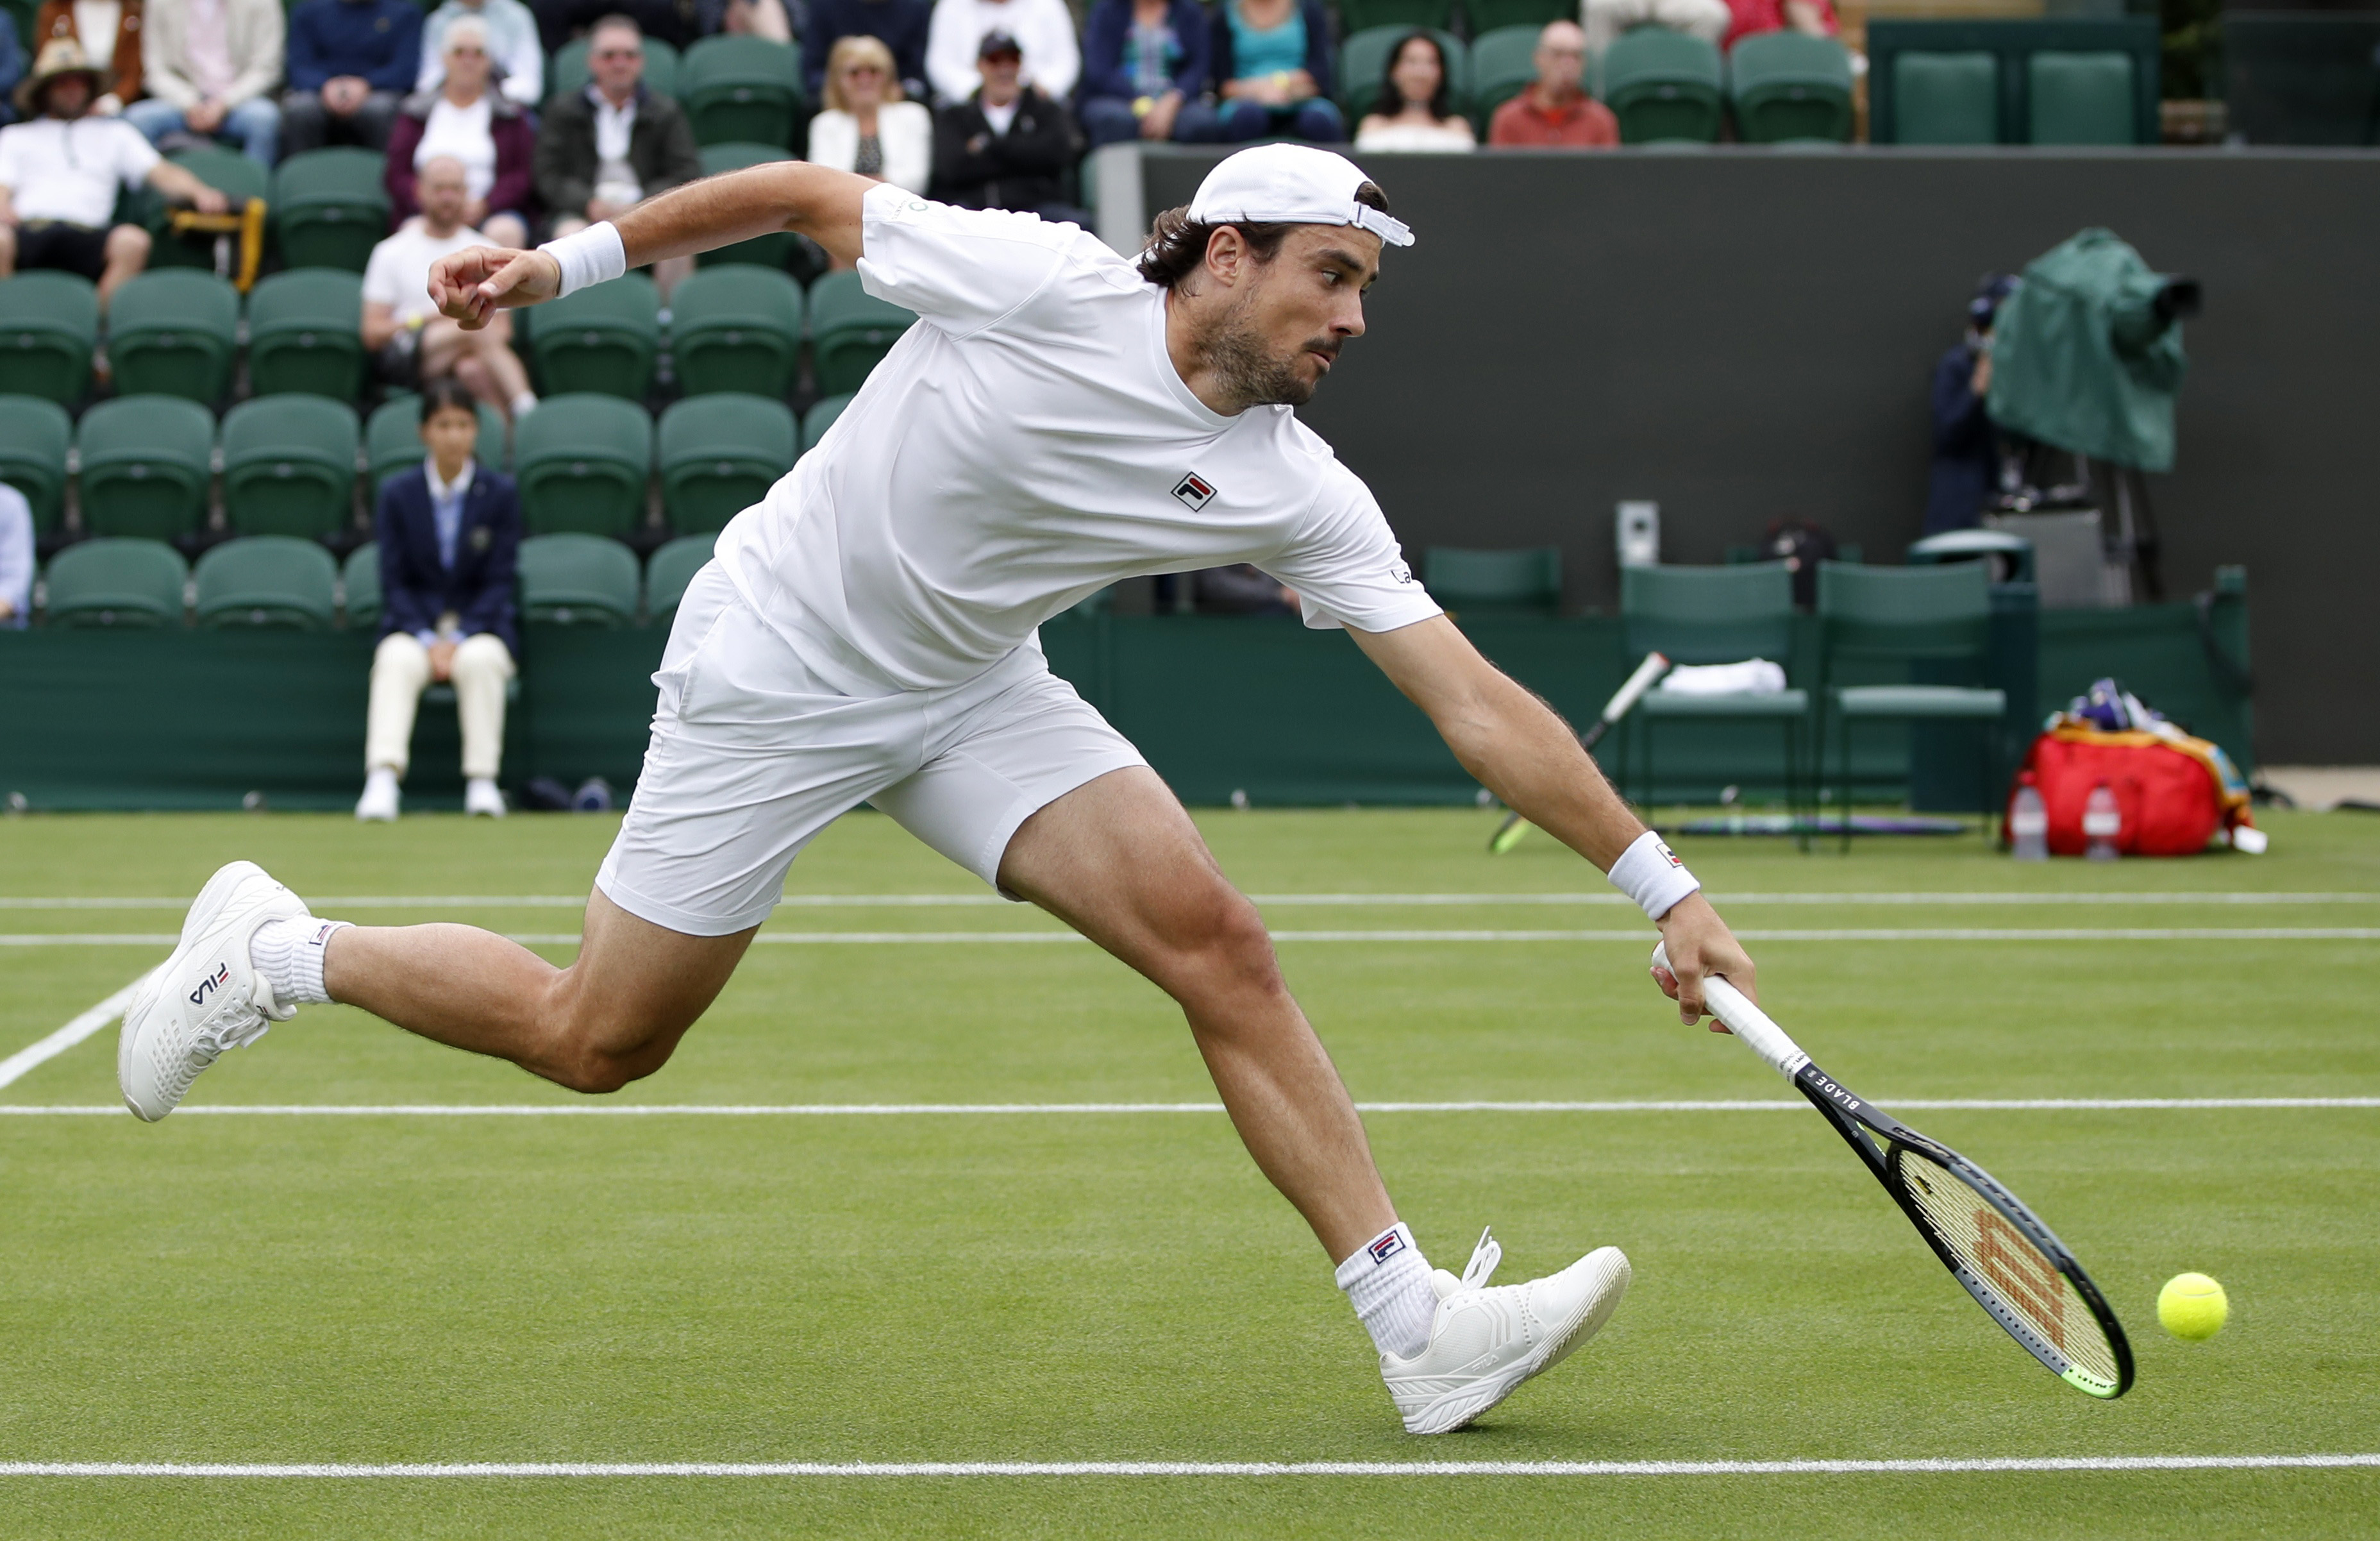 Tennis - Wimbledon - All England Lawn Tennis and Croquet Club, London, Britain - June 30, 2021 Argentina's Guido Pella in action during his first round match against Italy's Matteo Berrettini REUTERS/Paul Childs